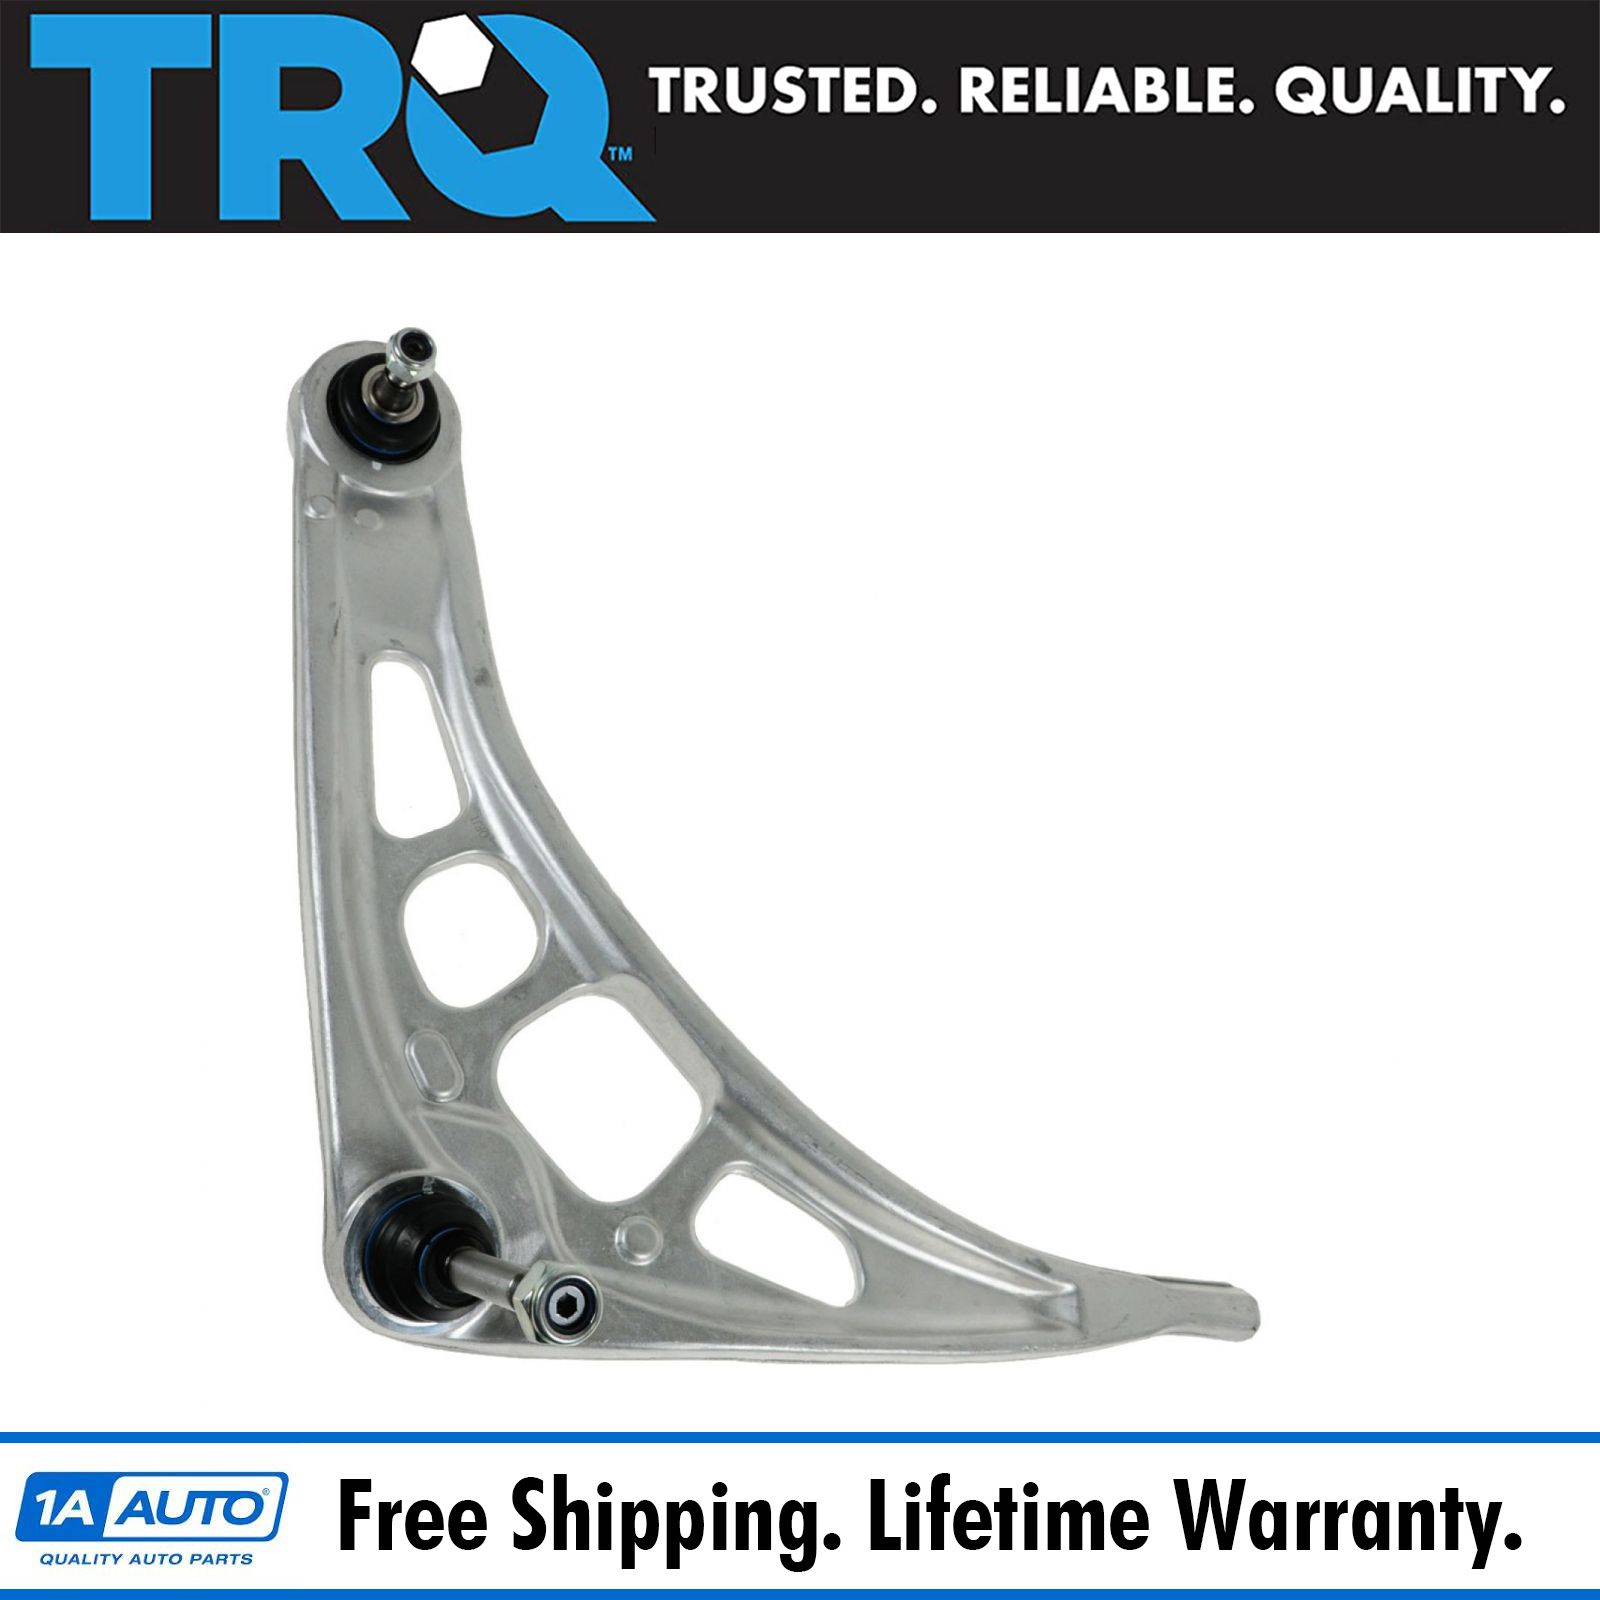 New Front RH Lower Control Arm with Ball Joint and Bushings Fits Ford Mustang